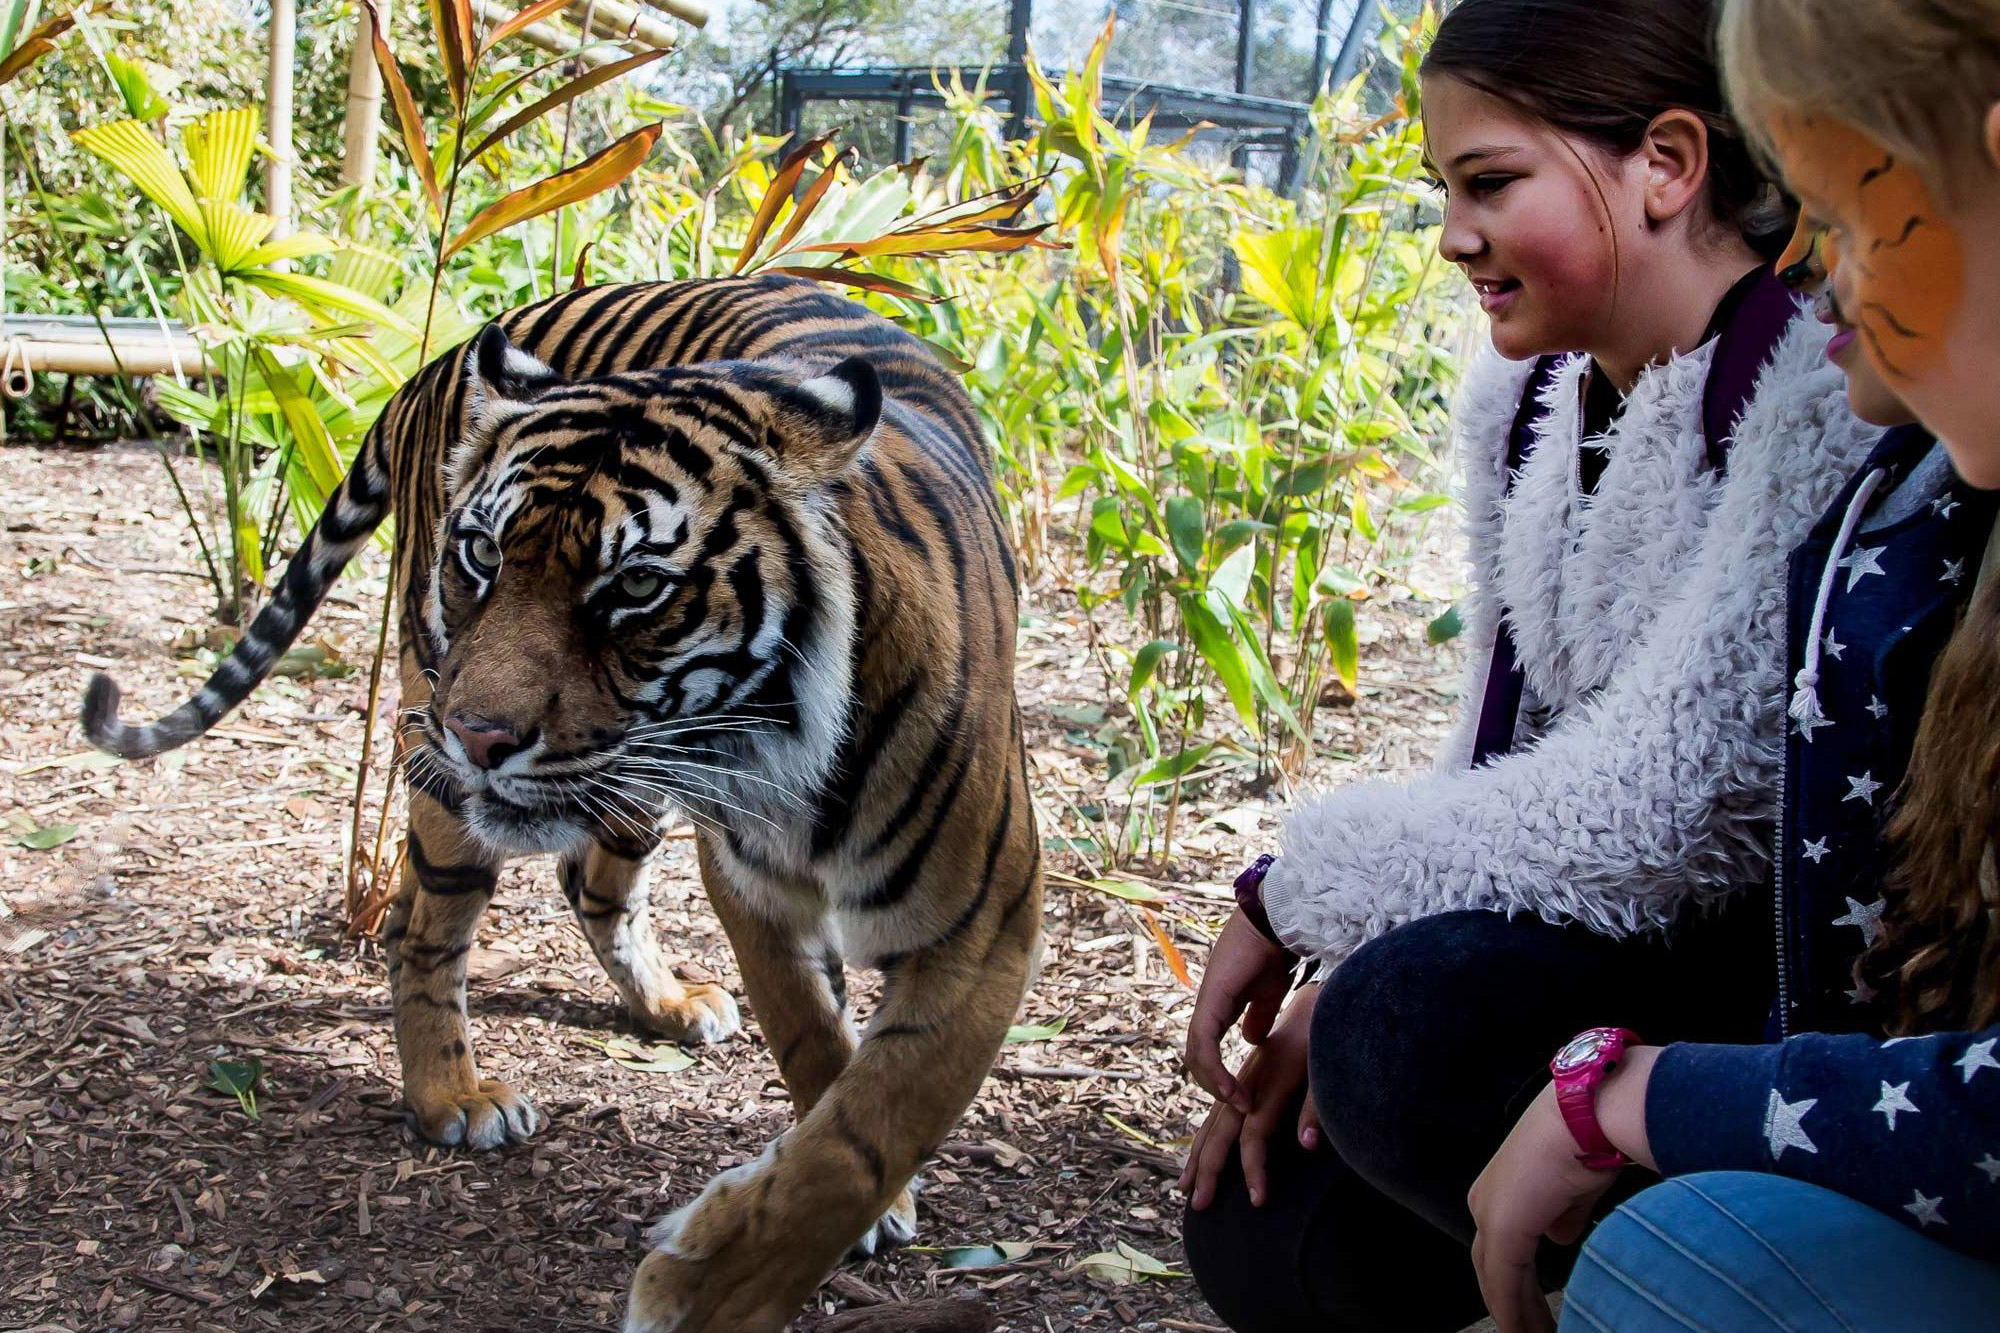 Tiger encounter at Taronga Zoo